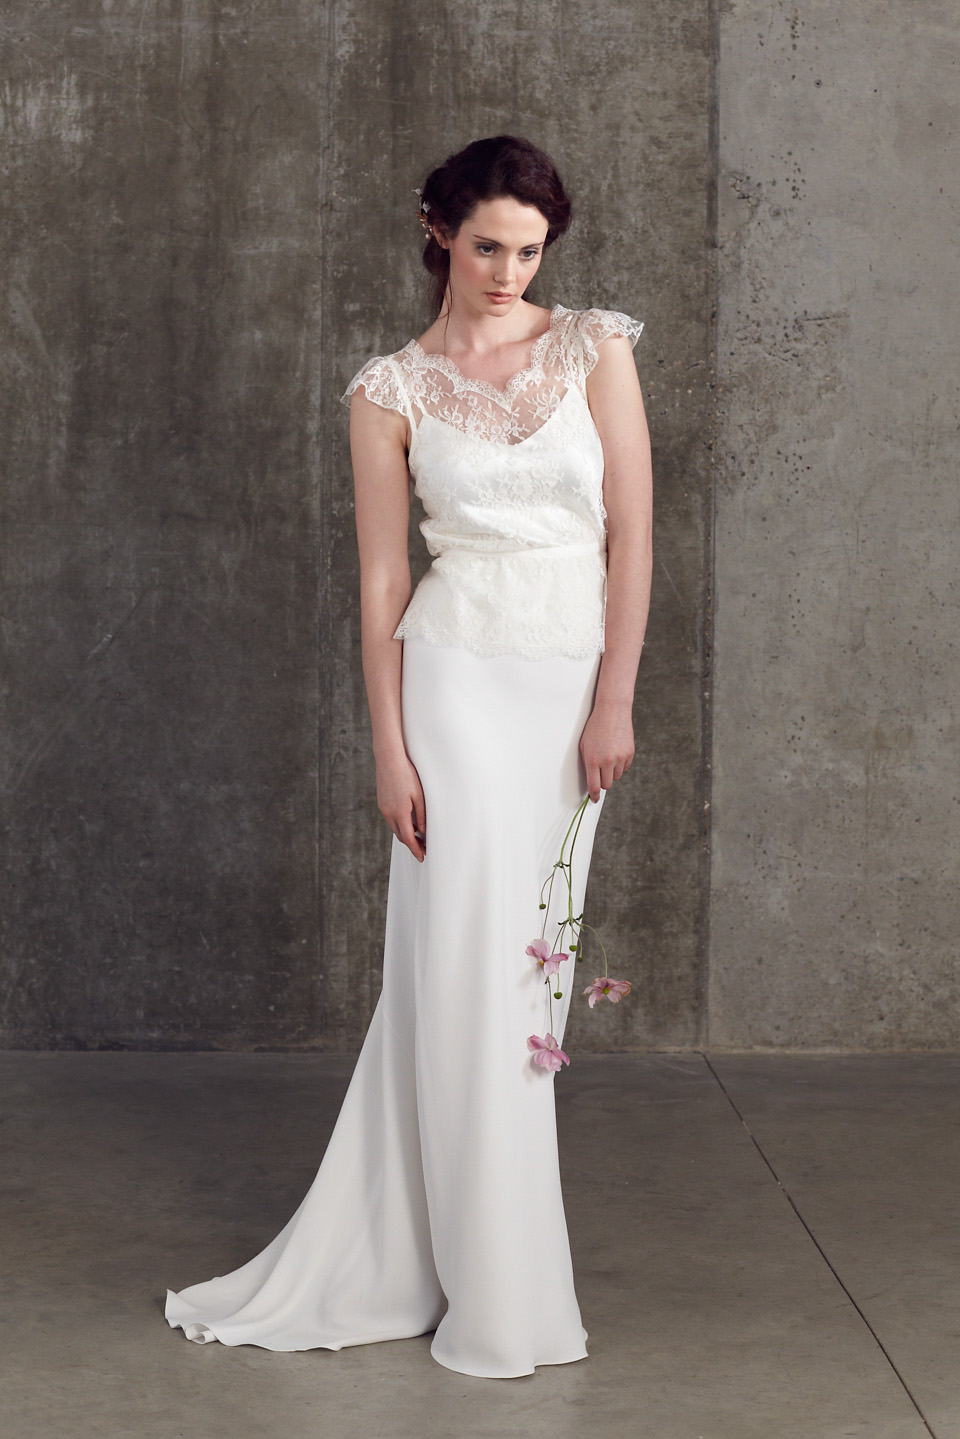 bridal separates sally lacock 2 piece wedding dresses wedding dress 2 piece Bridal Separates by Sally Lacock An Exquisite and Elegant Collection of 2 Piece Wedding